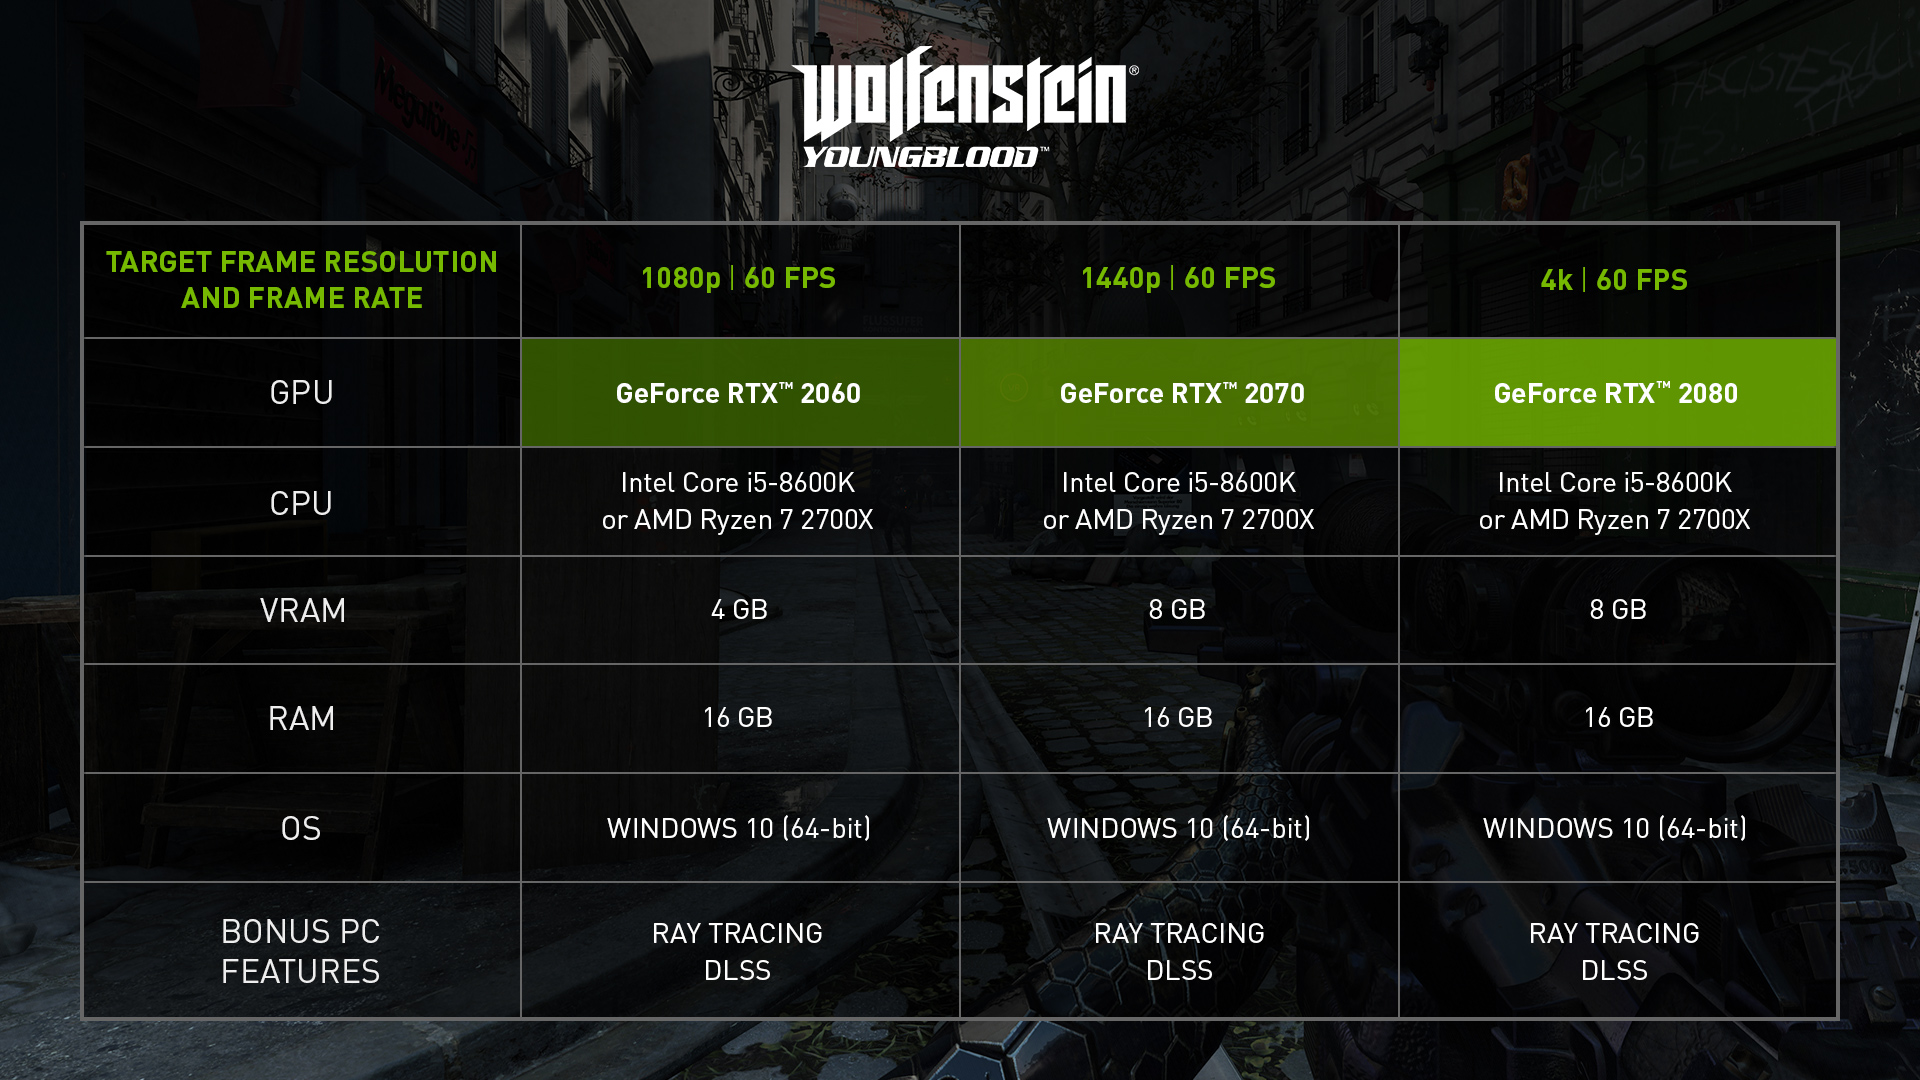 wolfenstein youngblood nvidia gpu